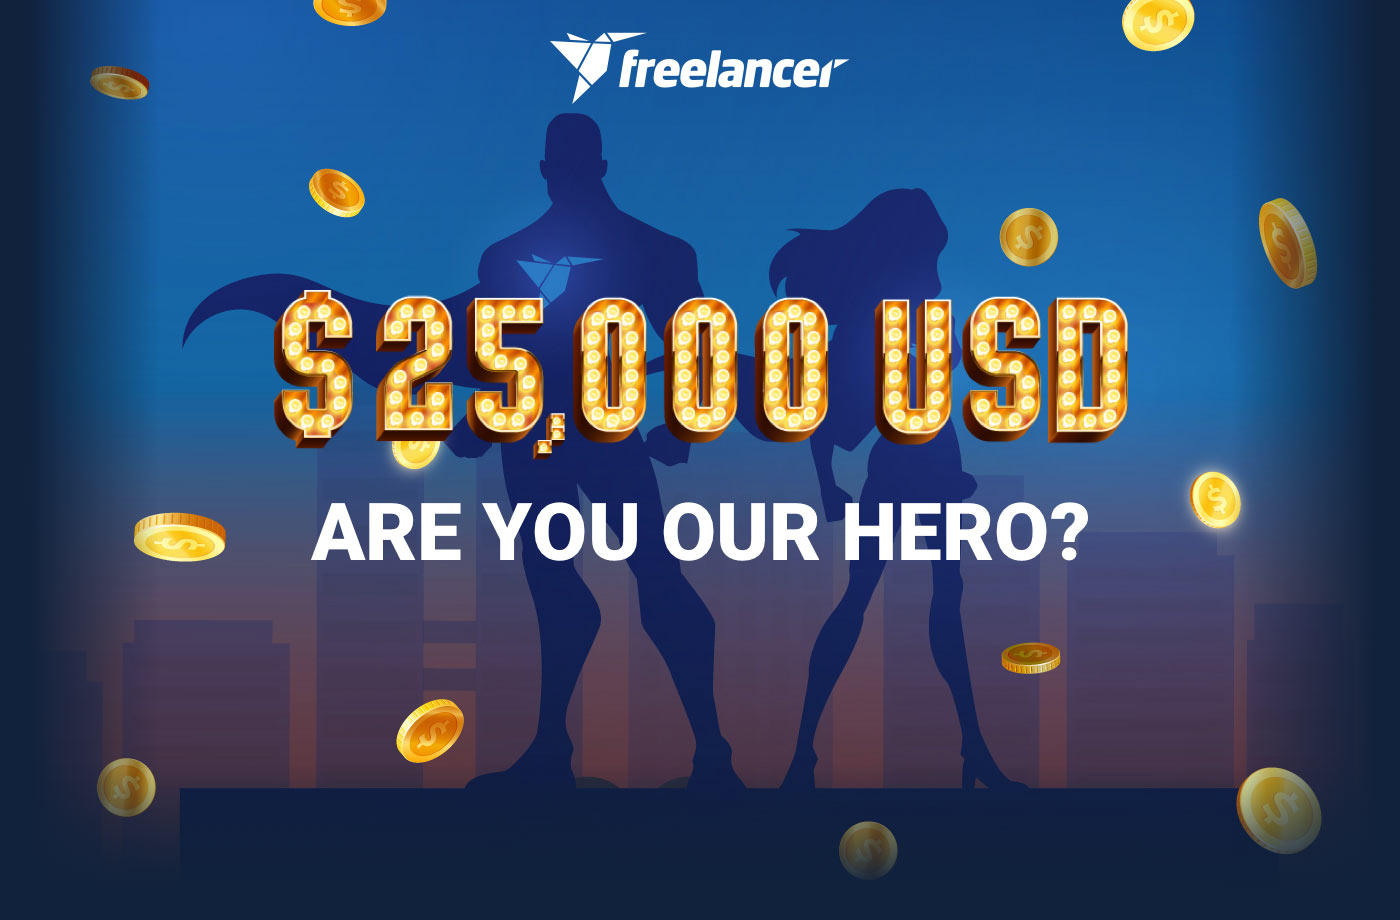 $25,000 USD. Are you our Hero?